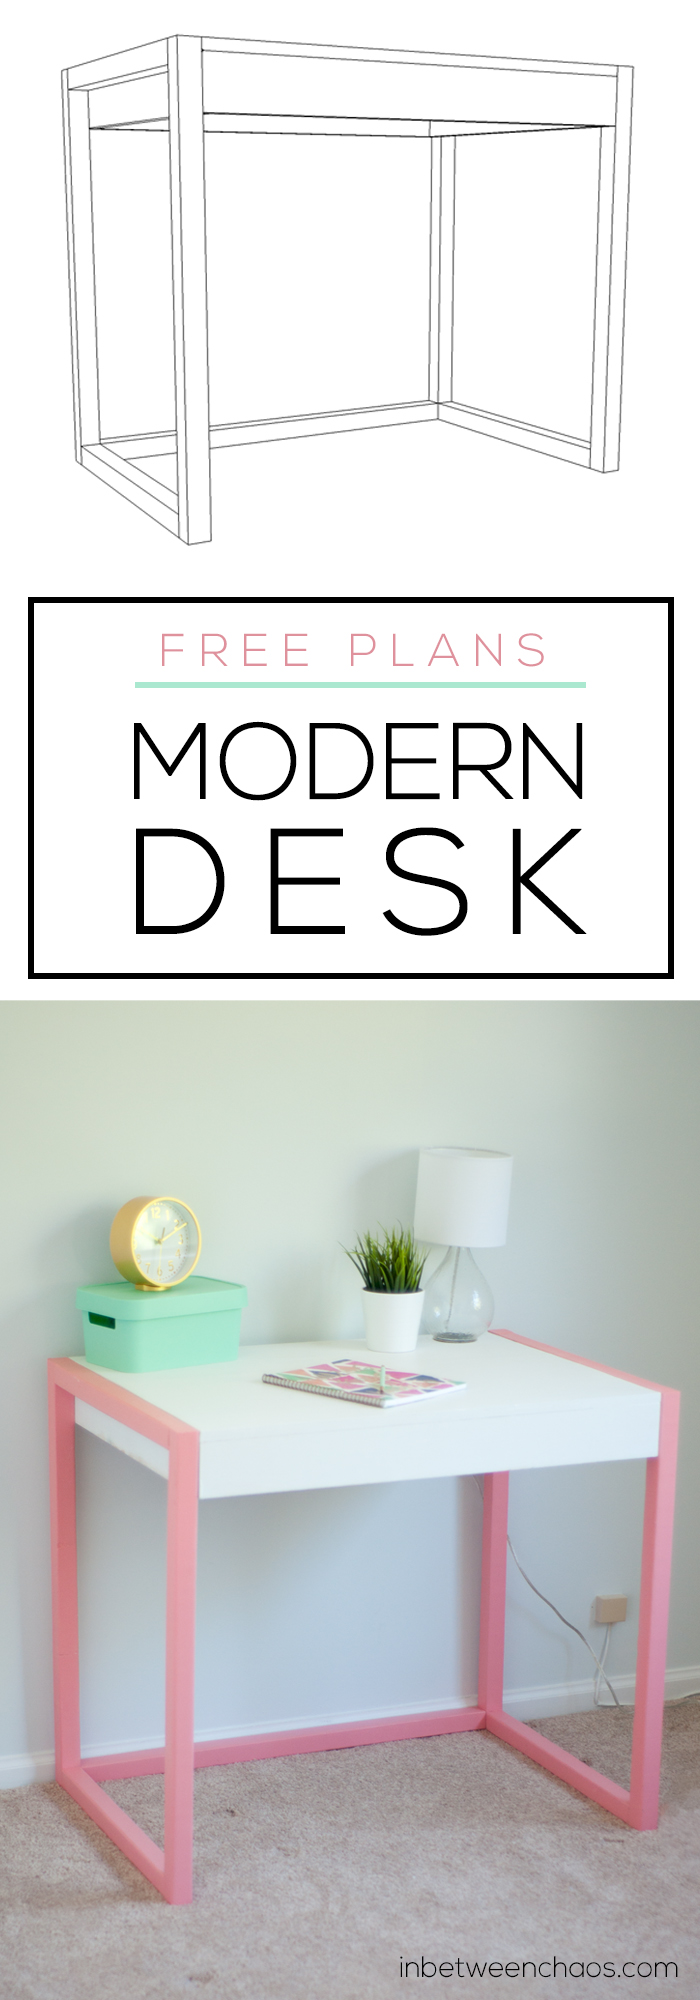 Fun Modern Desk Plan | inbetweenchaos.com